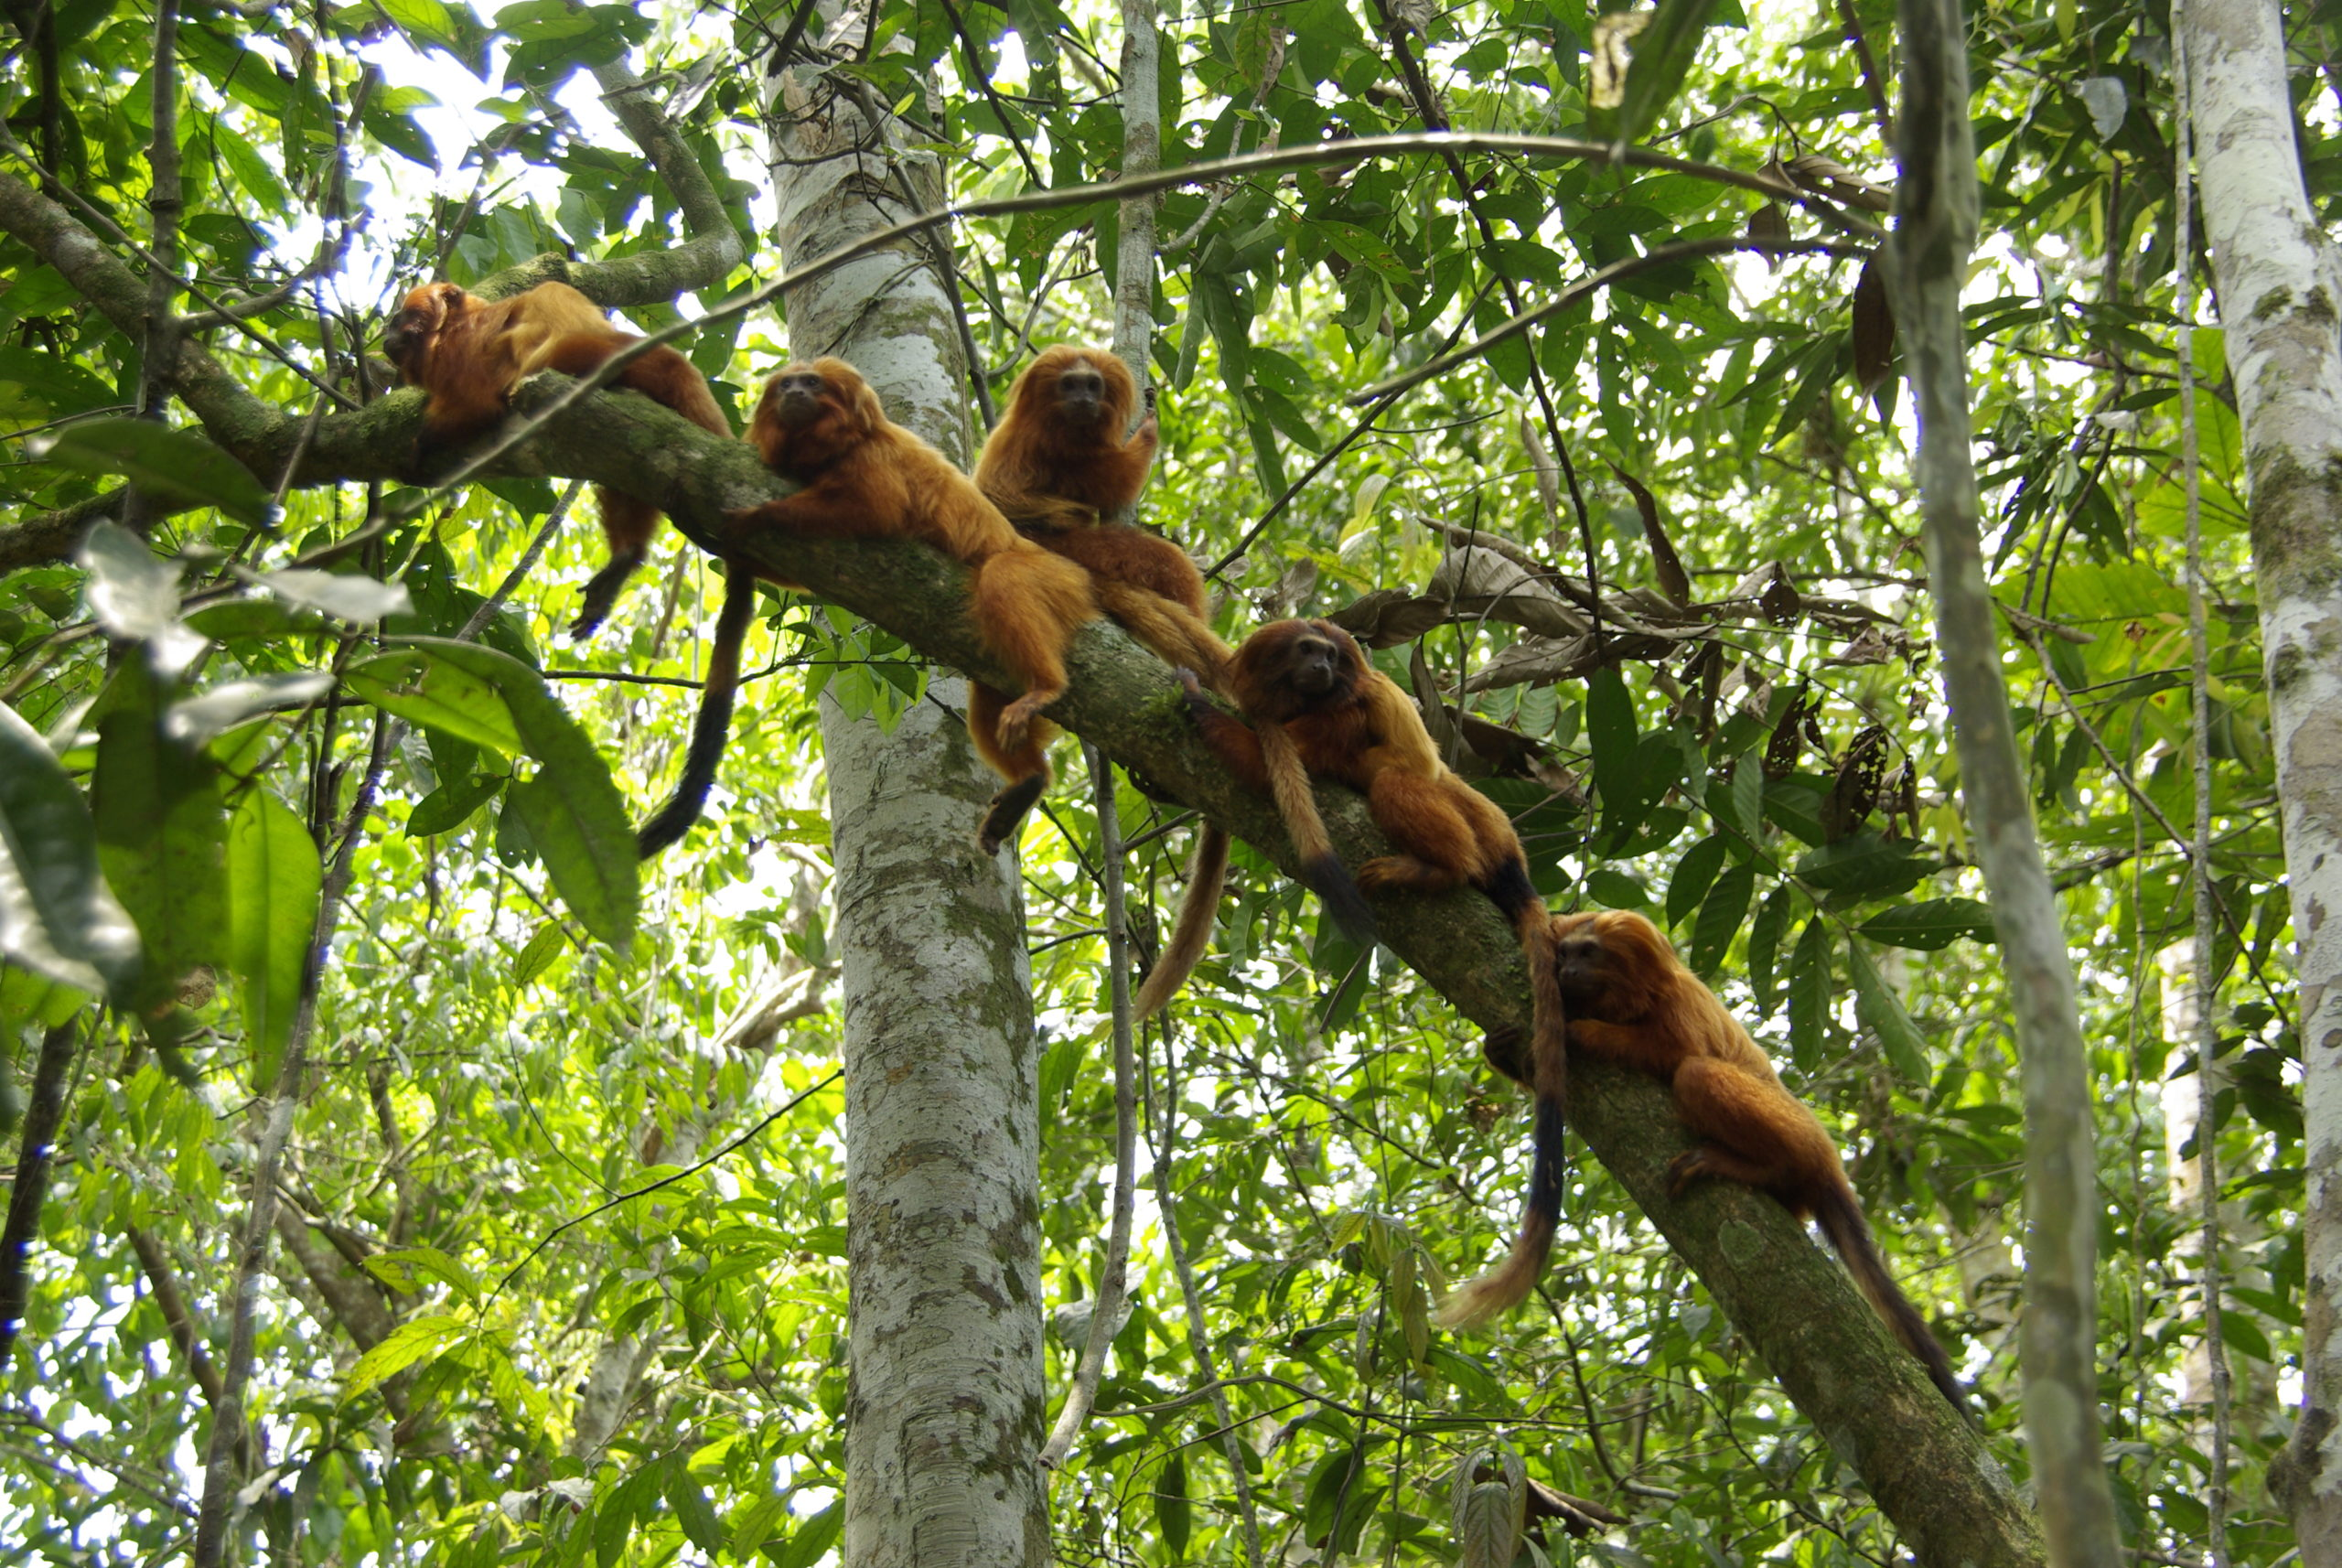 There are an estimated 2,500 golden lion tamarins living in the wild today. As fears of a new wave of trafficking emerge, the Associação Mico-Leão-Dourado is focusing on creating a 25,000-hectare (62,000-acre) corridor of protected forests for the species. Image by Andreia Martins/AMLD.